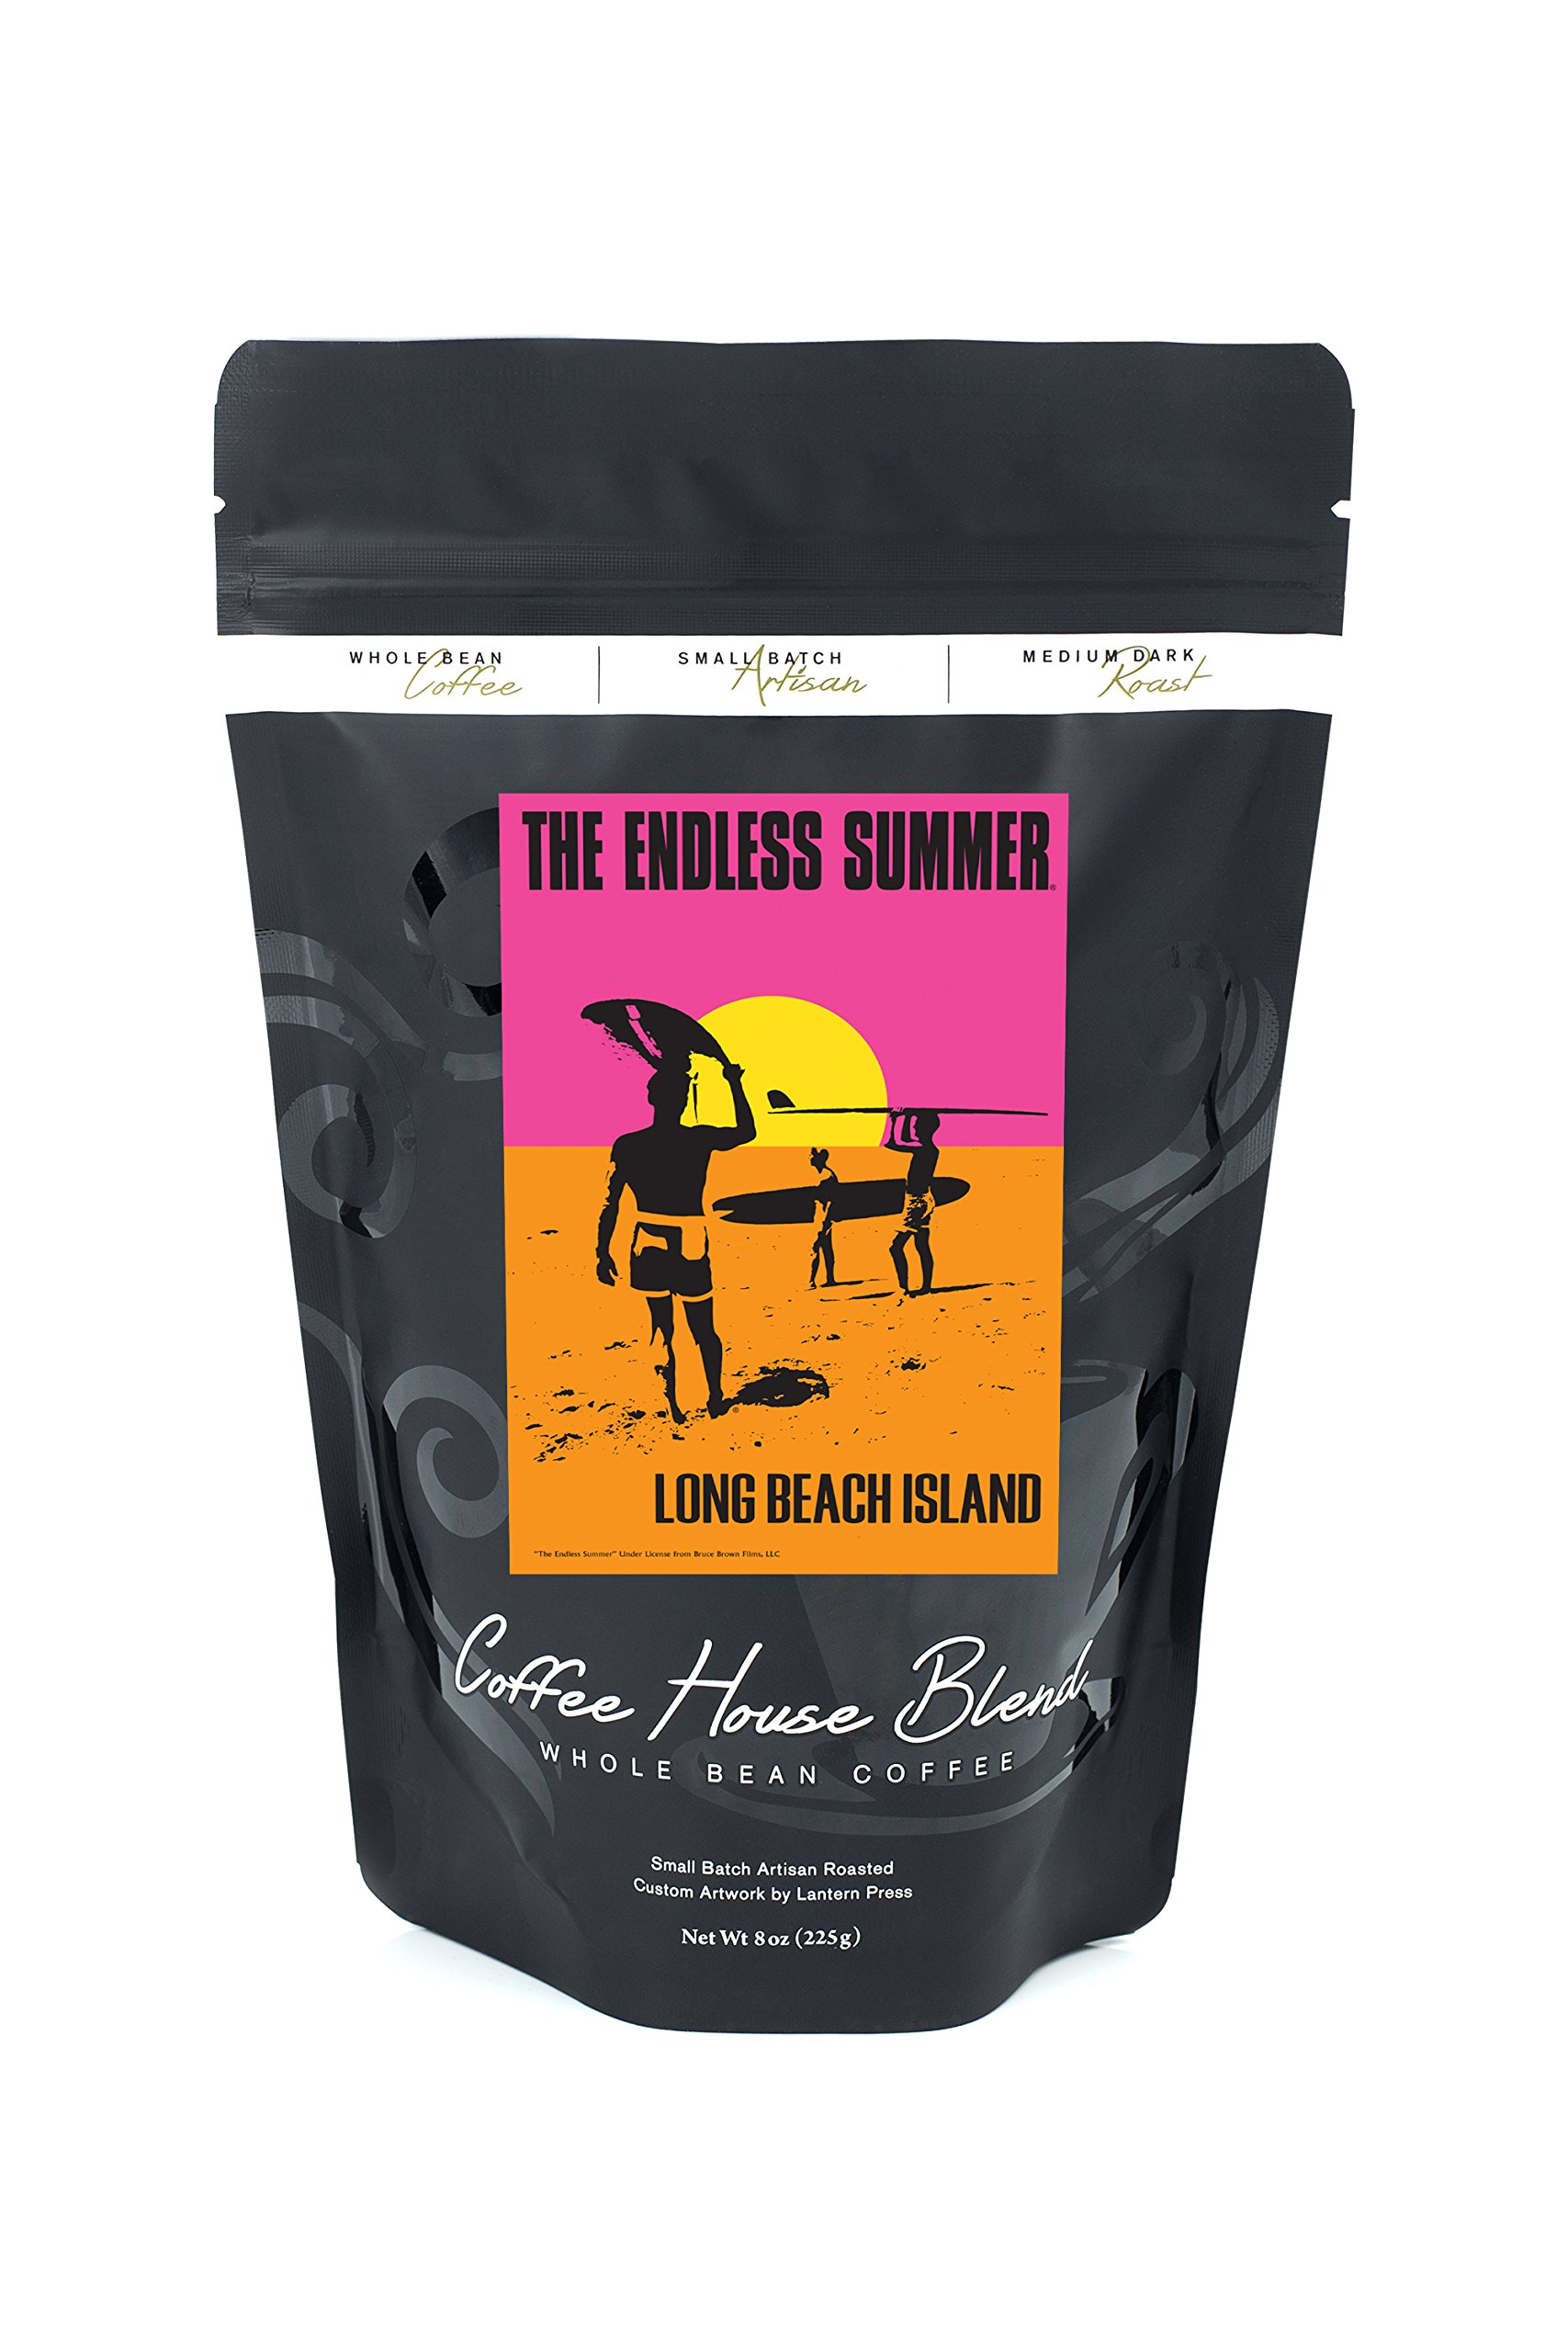 Long Beach Island - The Endless Summer - Original Movie Poster (8oz Whole Bean Small Batch Artisan Coffee - Bold & Strong Medium Dark Roast w/ Artwork)